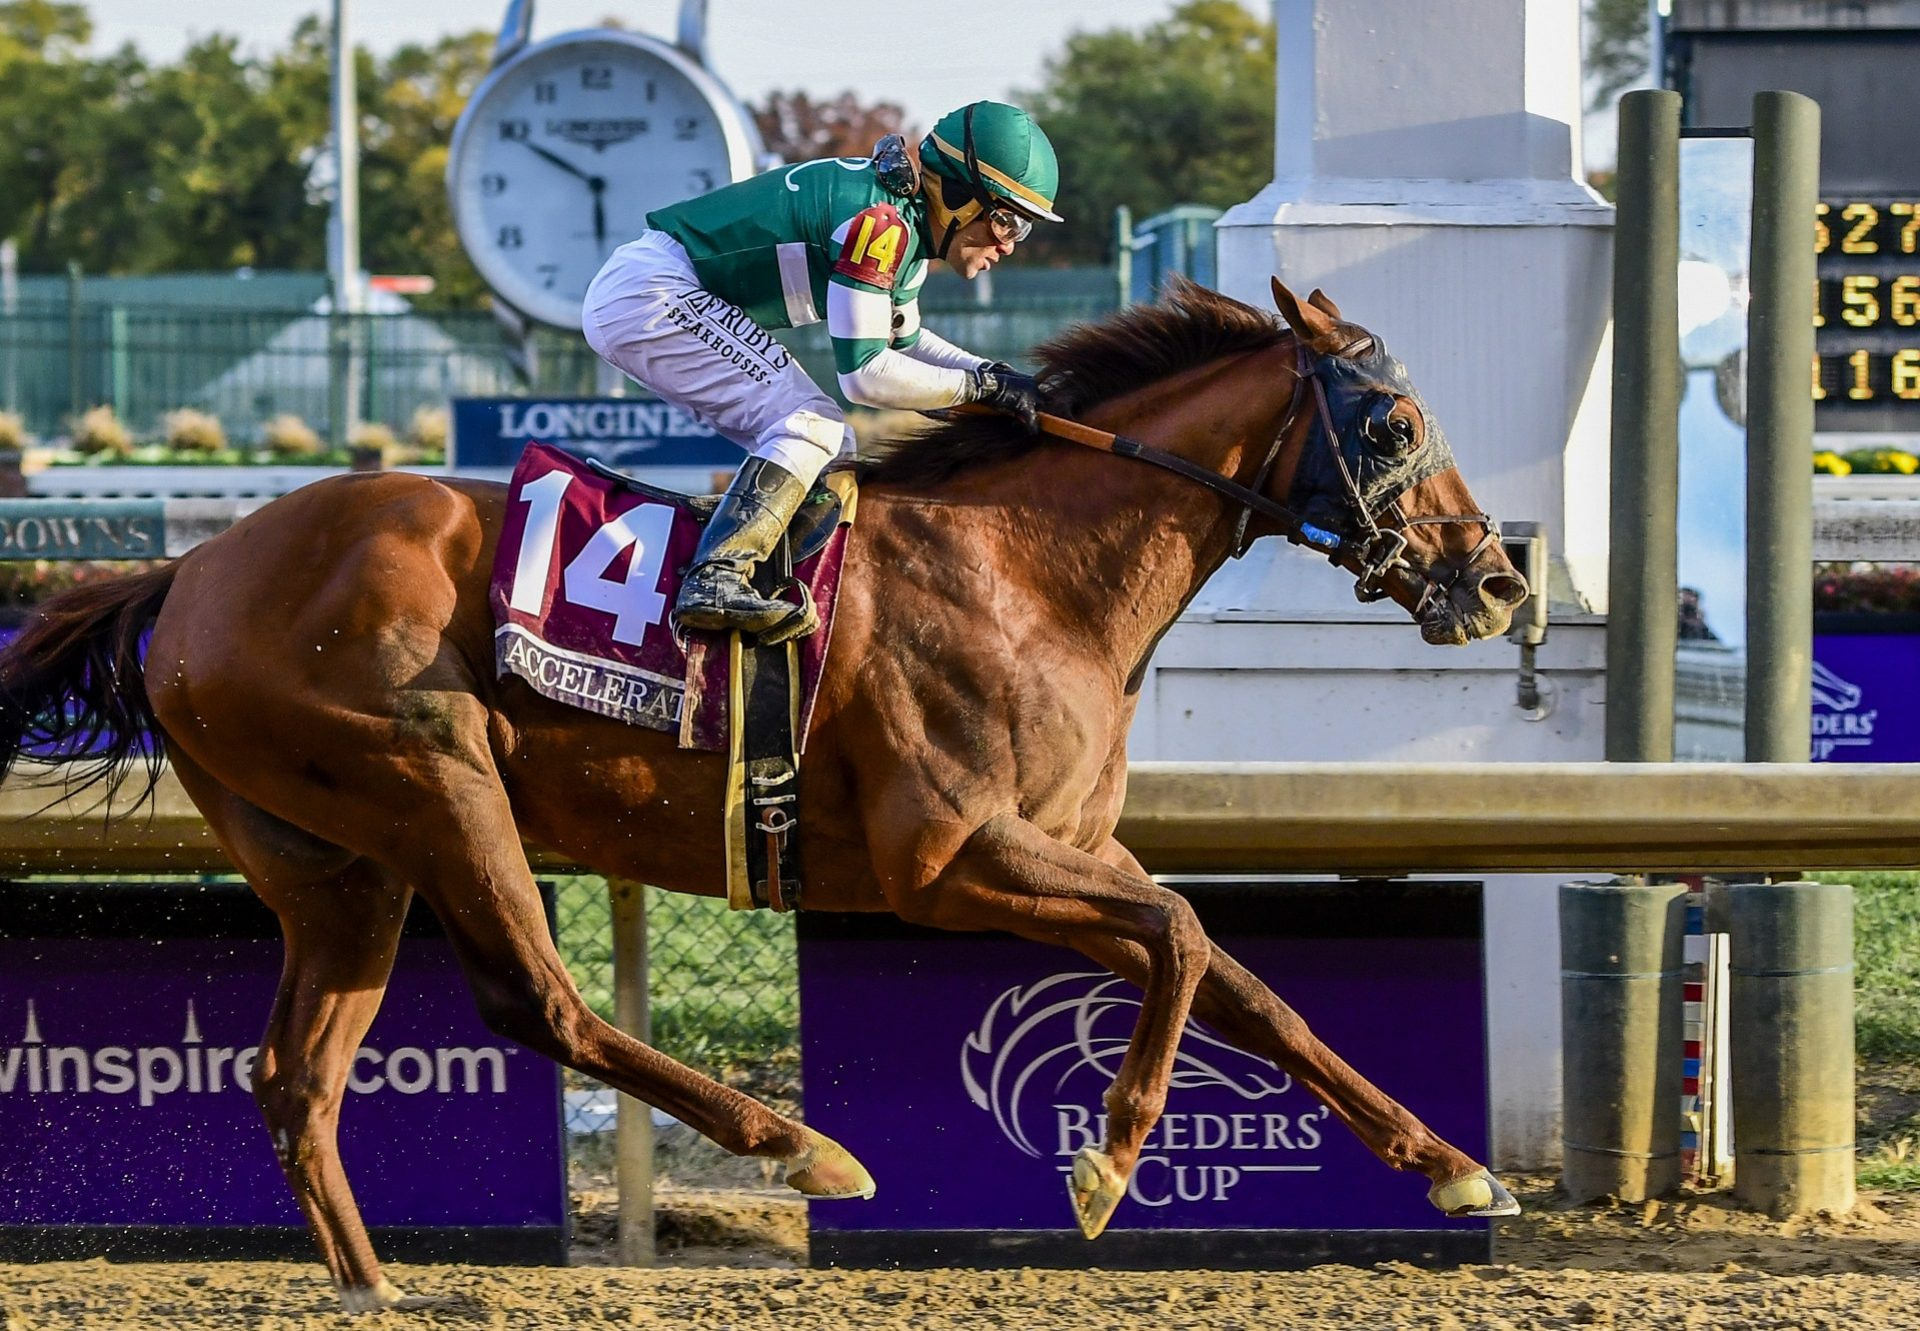 Accelerate (Lookin At Lucky) winning the G1 Breeders Cup Classic at Churchill Downs